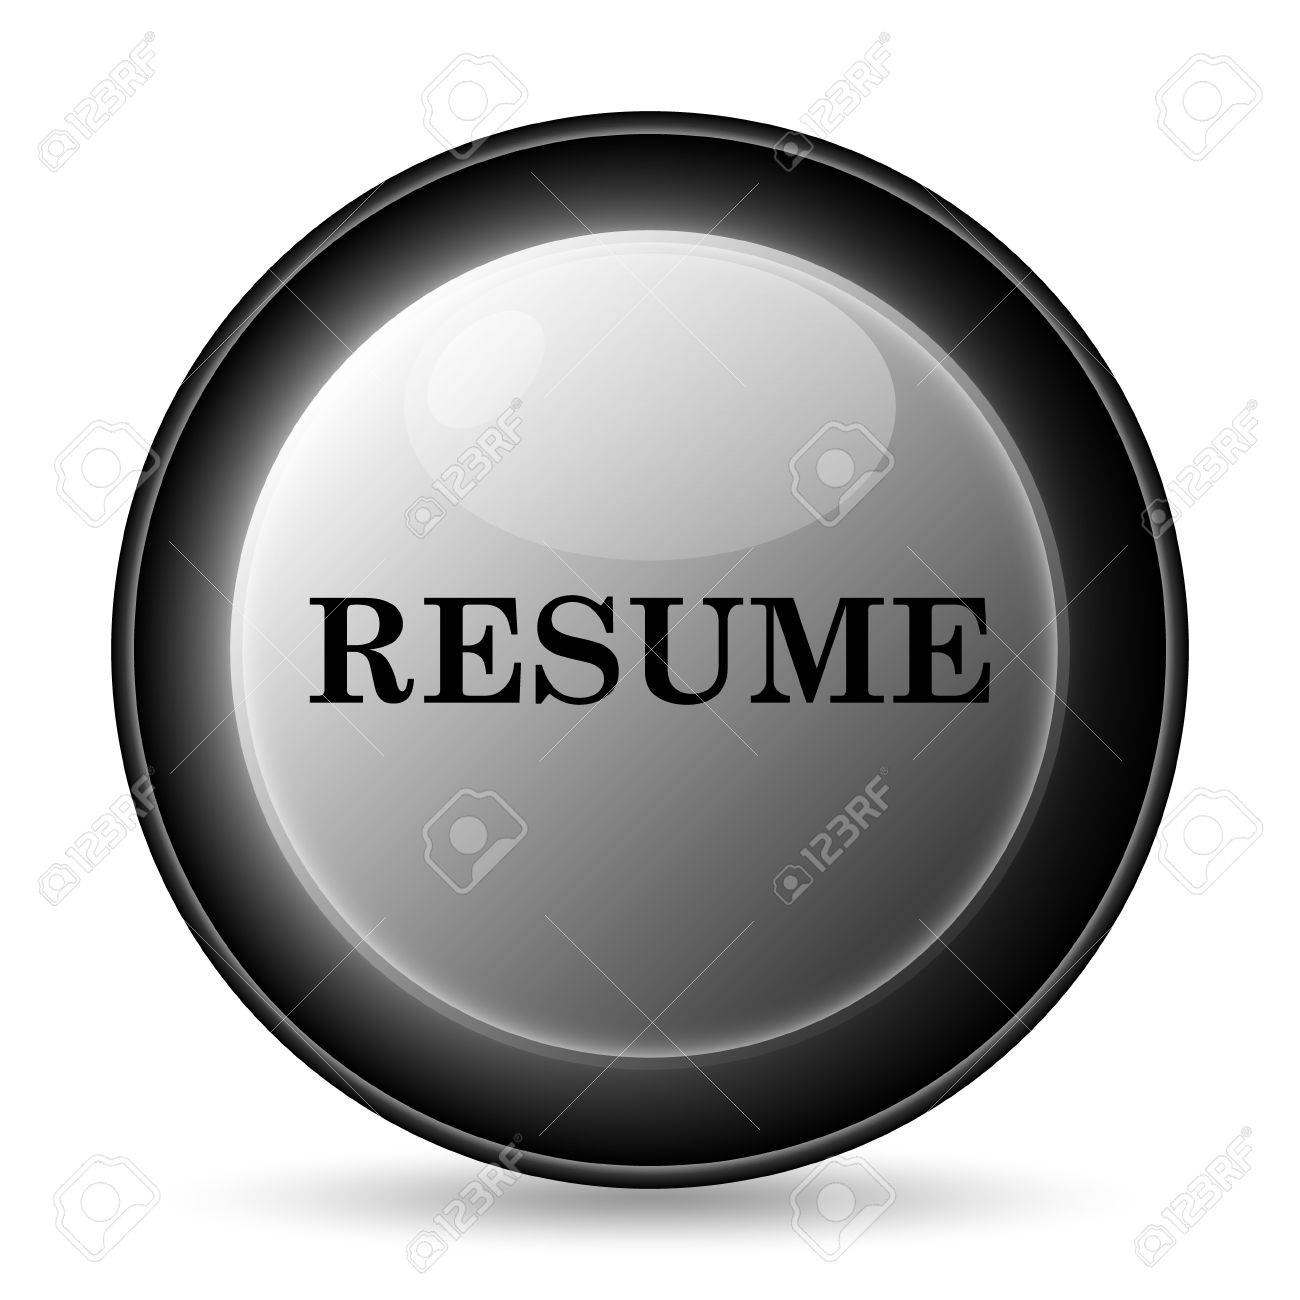 resume icon internet button on white background stock photo resume icon internet button on white background stock photo 36205129